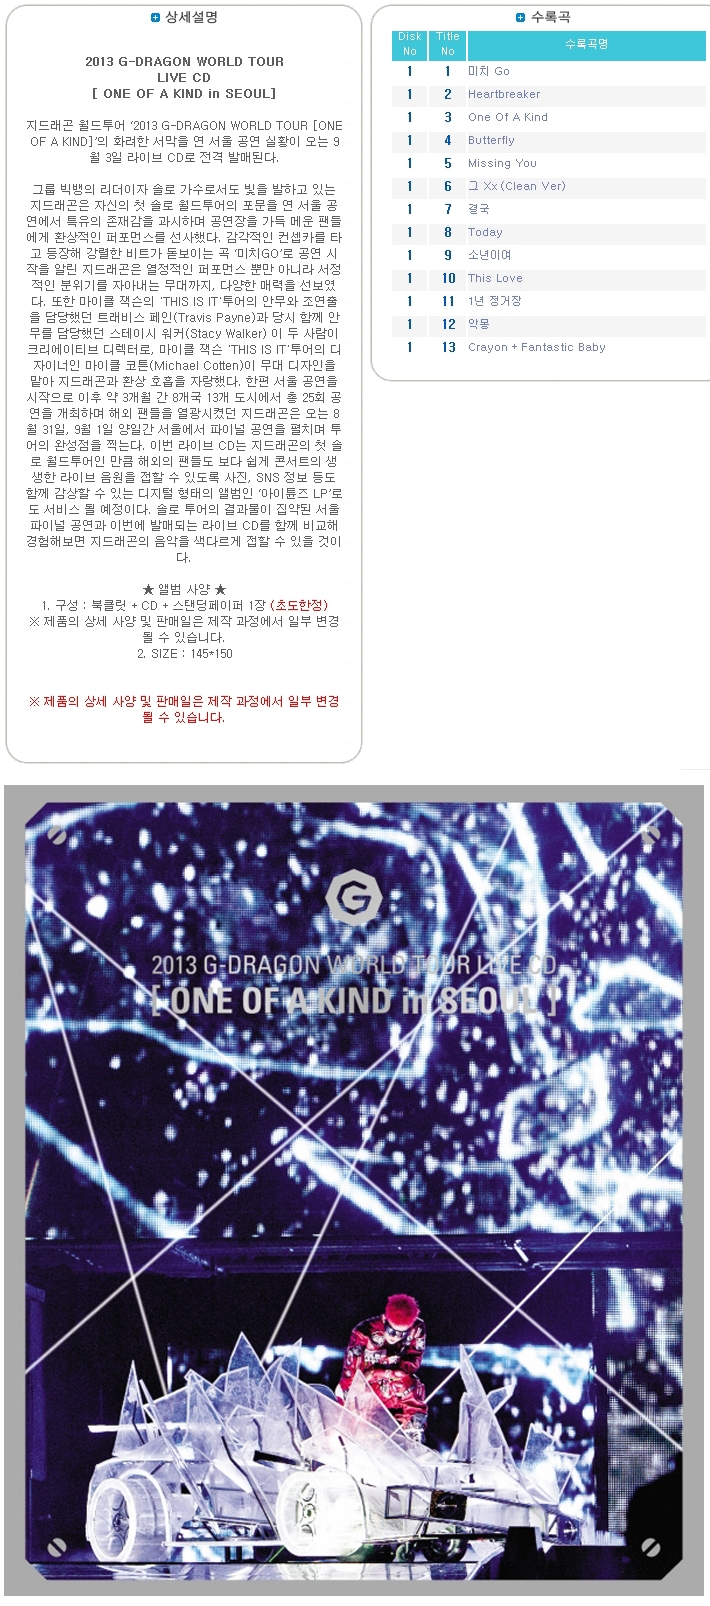 Big Bang,2013 G-DRAGON WORLD TOUR LIVE CD[ONE OF A KIND in SEOUL]